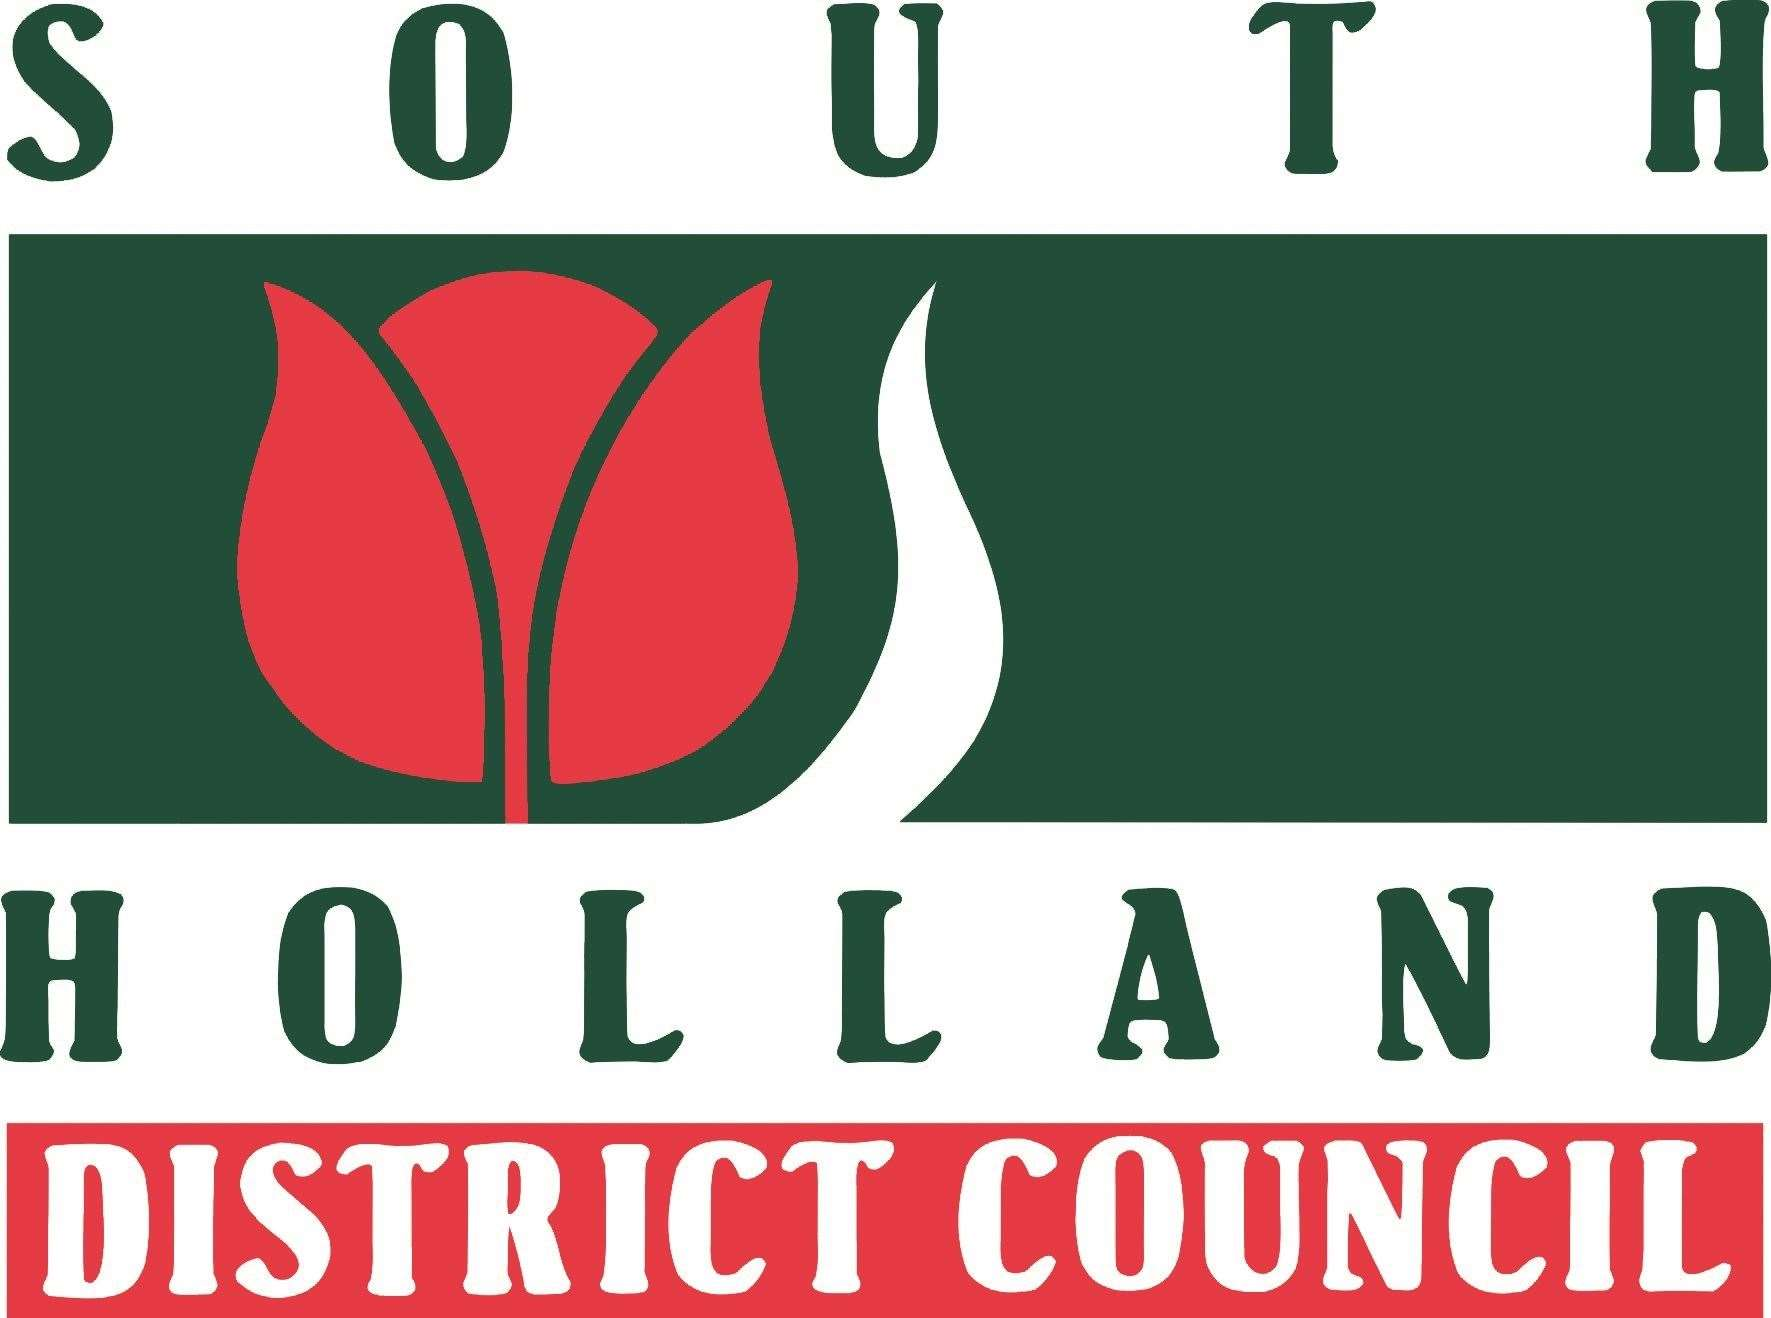 South Holland District Council's elections for 2019 took place on May 2.